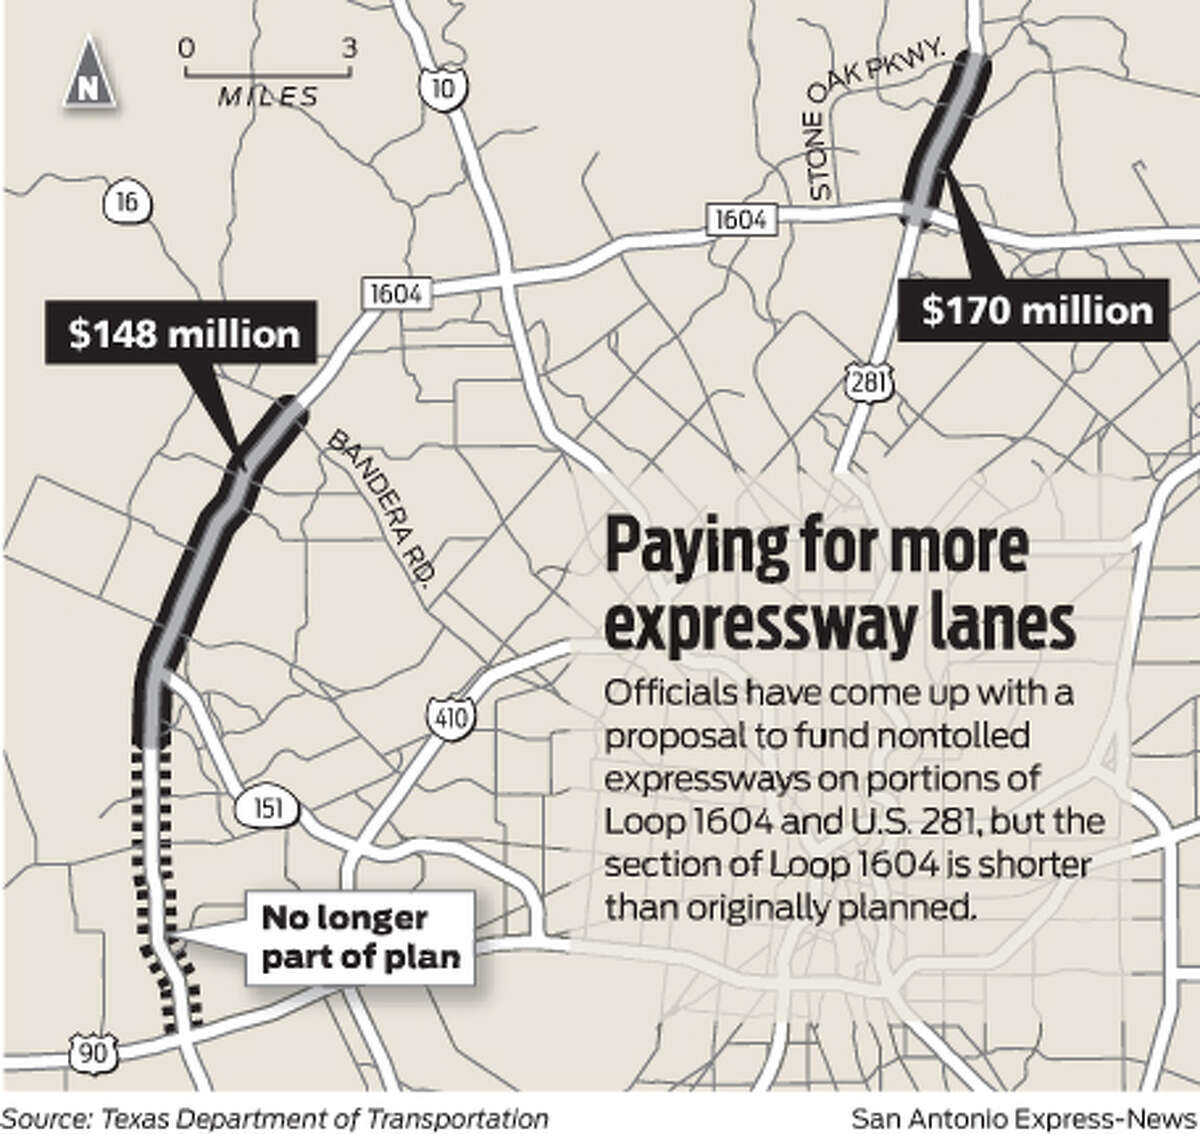 Paying for more expressway lanes Officials have come up with a proposal to fund nontolled expressways on portions of Loop 1604 and U.S. 281, but the section of Loop 1604 is shorter than originally planned.